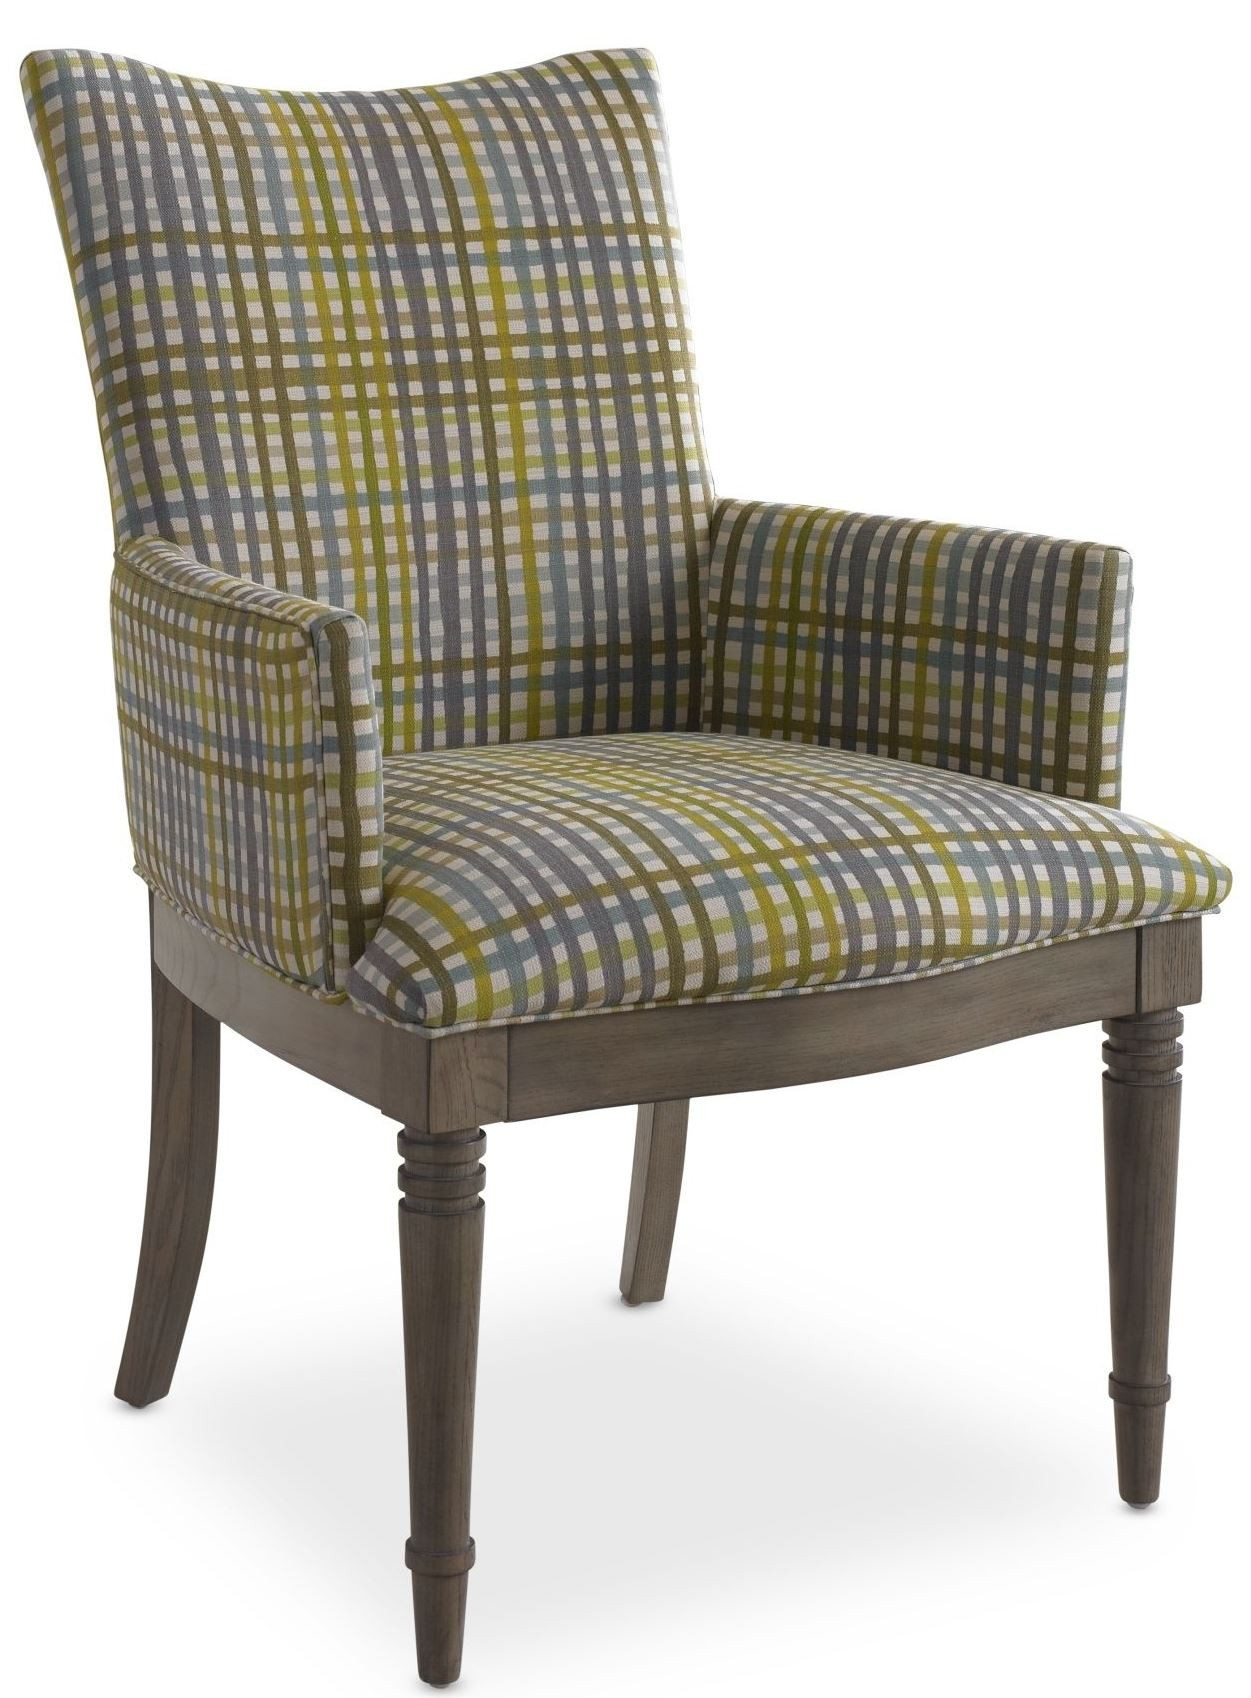 Plaid Chair Open Seating Grey Oak Kate Plaid Arm Chair From Somerton